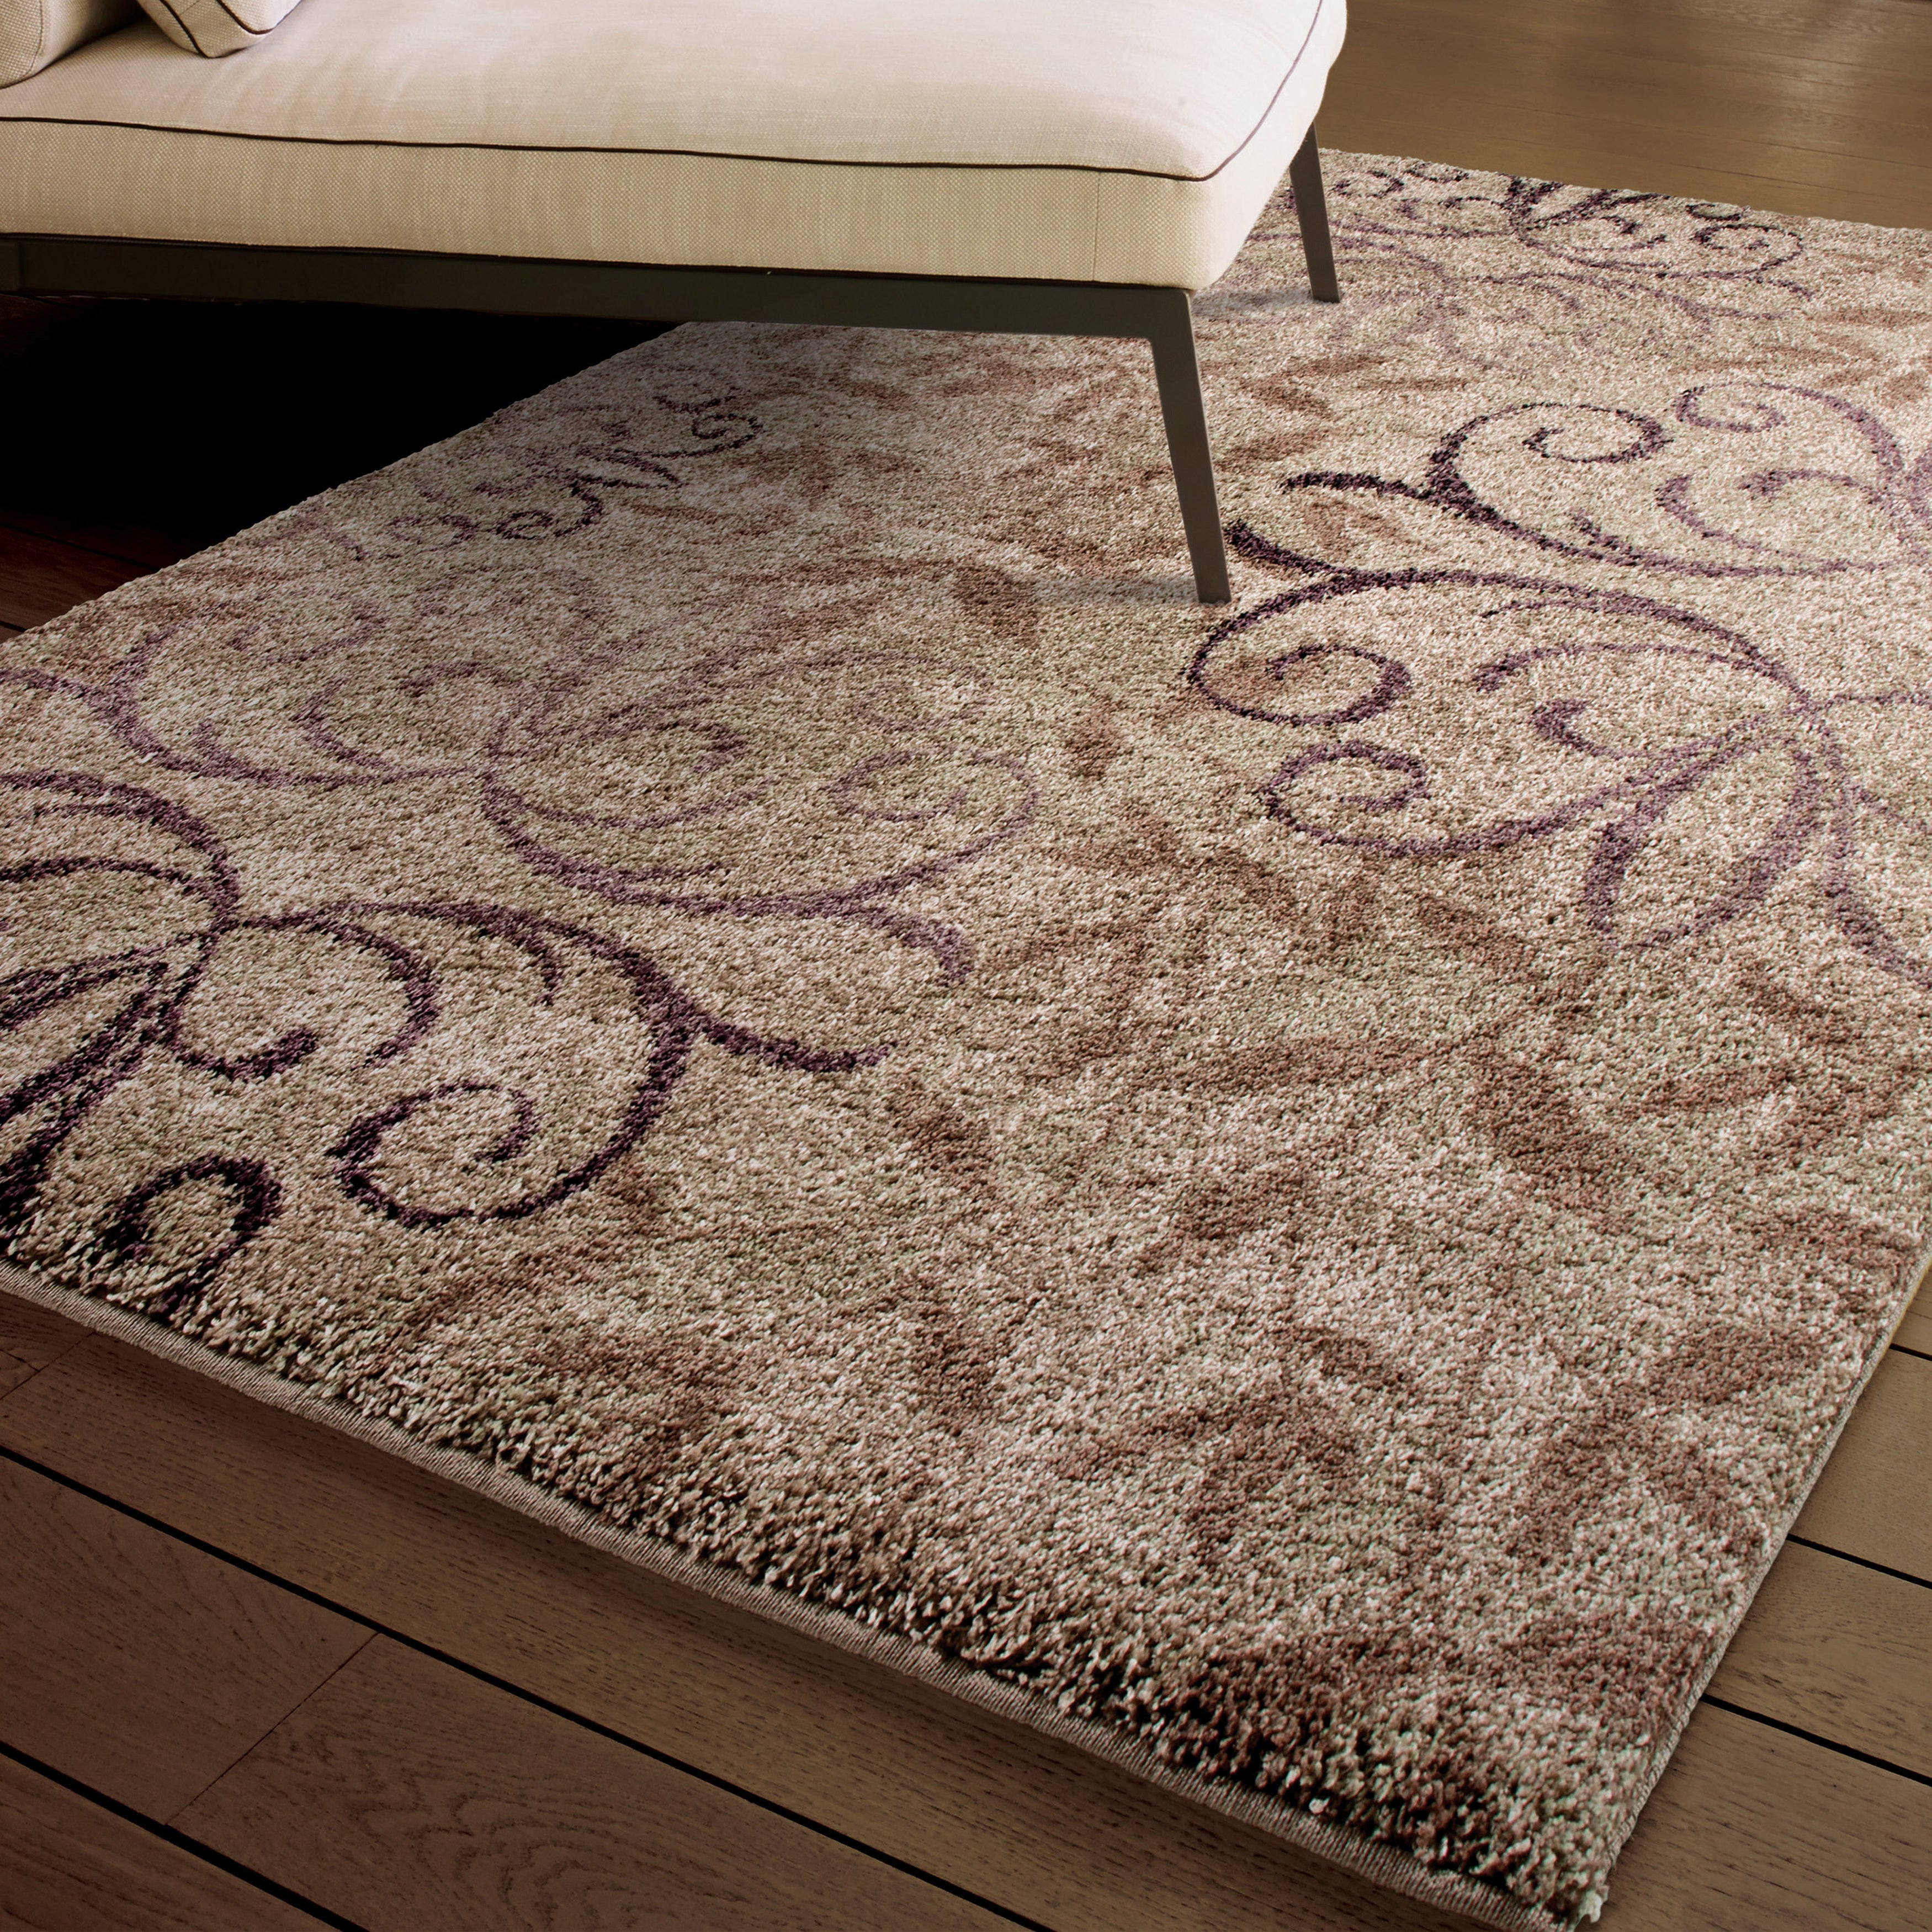 Carolina Weavers Comfy and Cozy Grand Comfort Collection ...